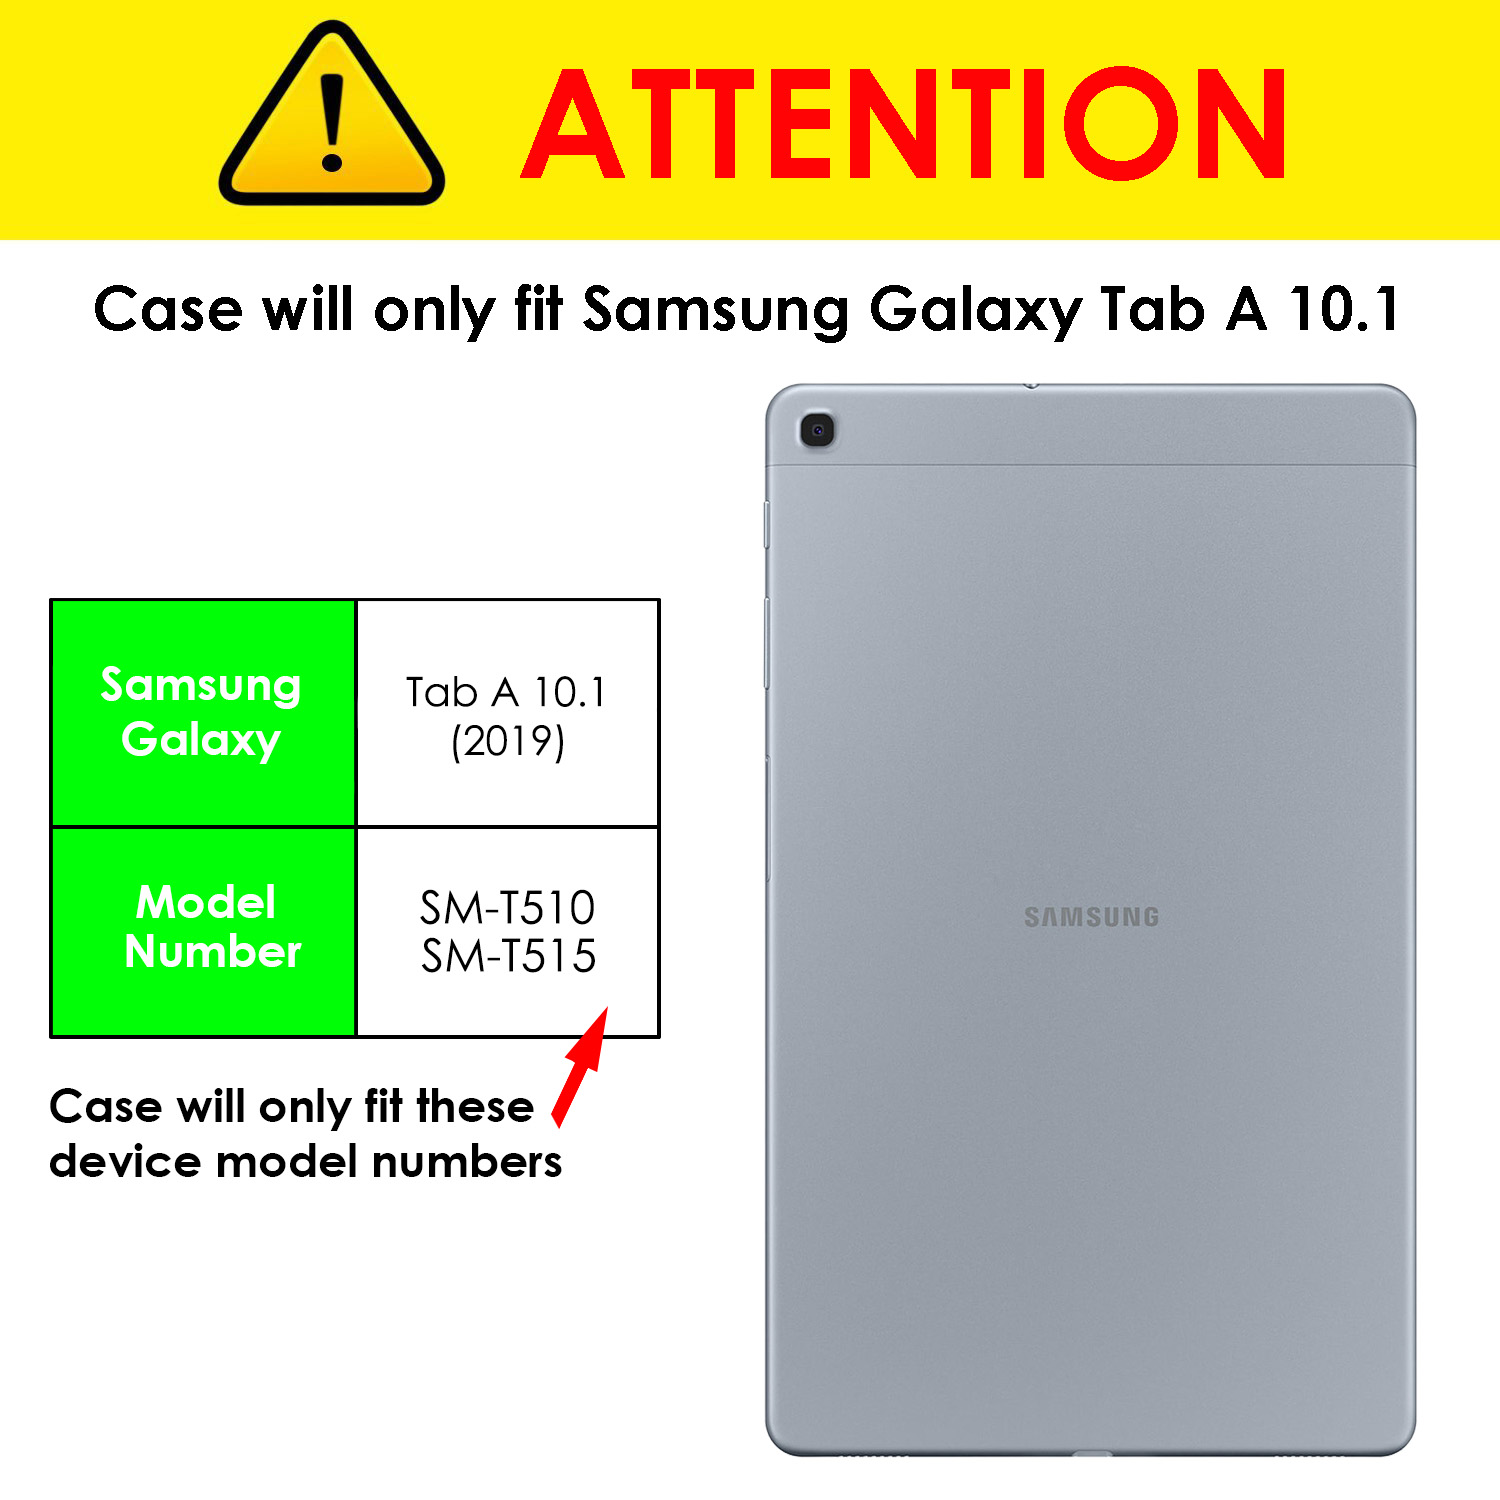 miniature 4 - Samsung Galaxy Tab A 10.1 2019 Étui Magnétique Protection & Support + Stylet